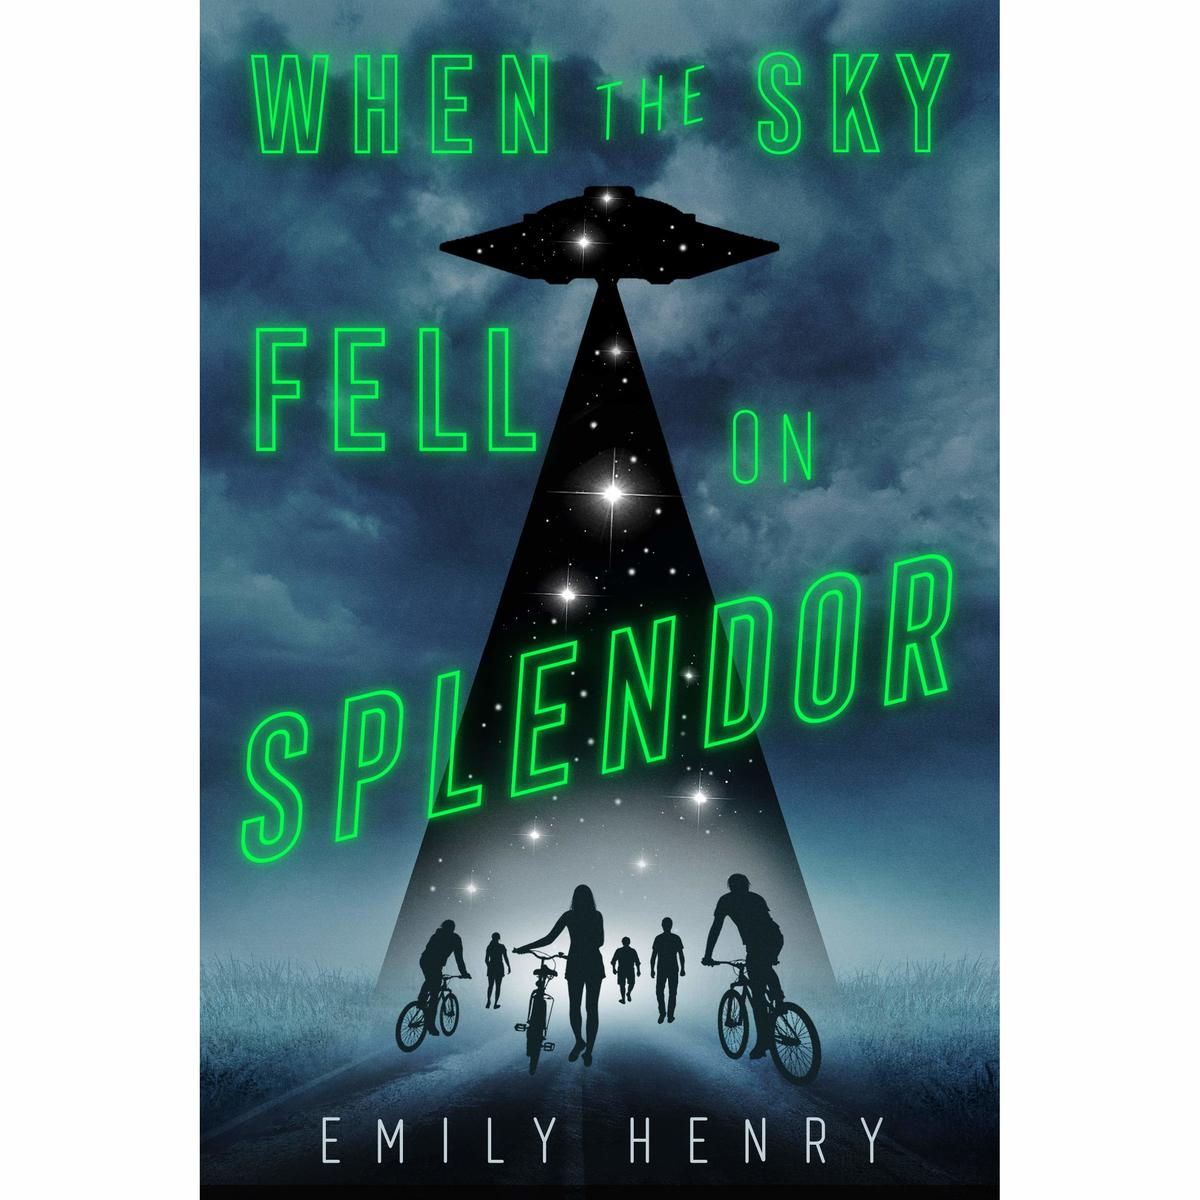 when the sky fell on splendor cover